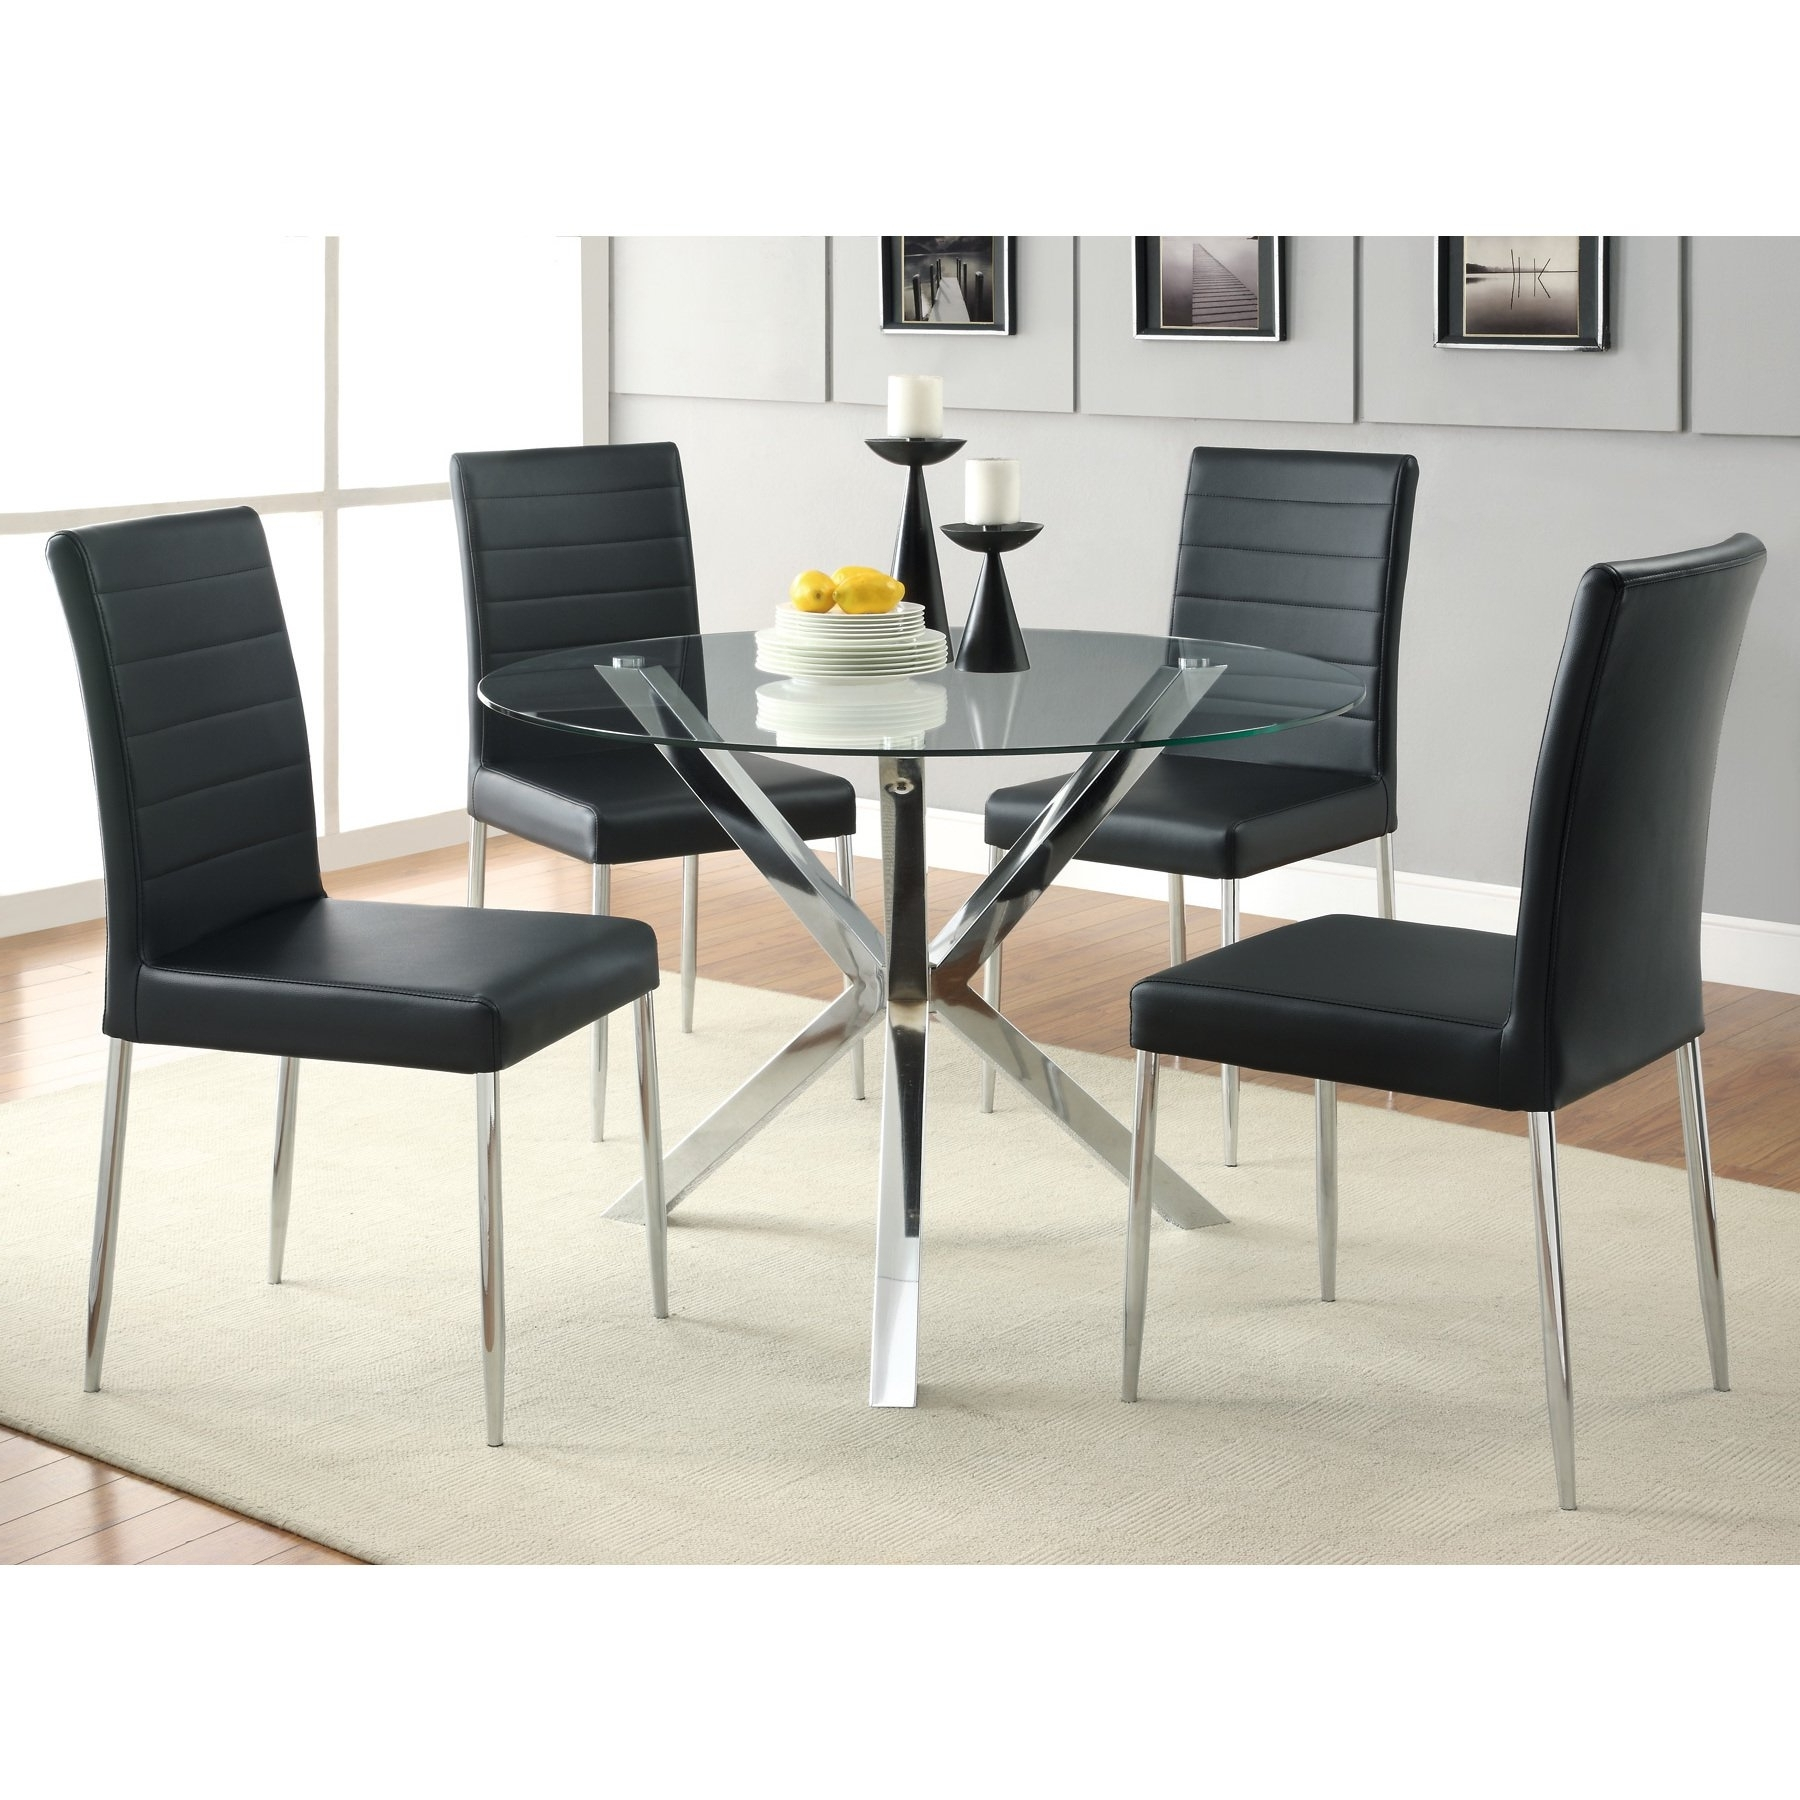 Chrome Dining Room Chairs With 2018 Shop Coaster Company Chrome Glass Top Dining Table – Free Shipping (View 9 of 25)